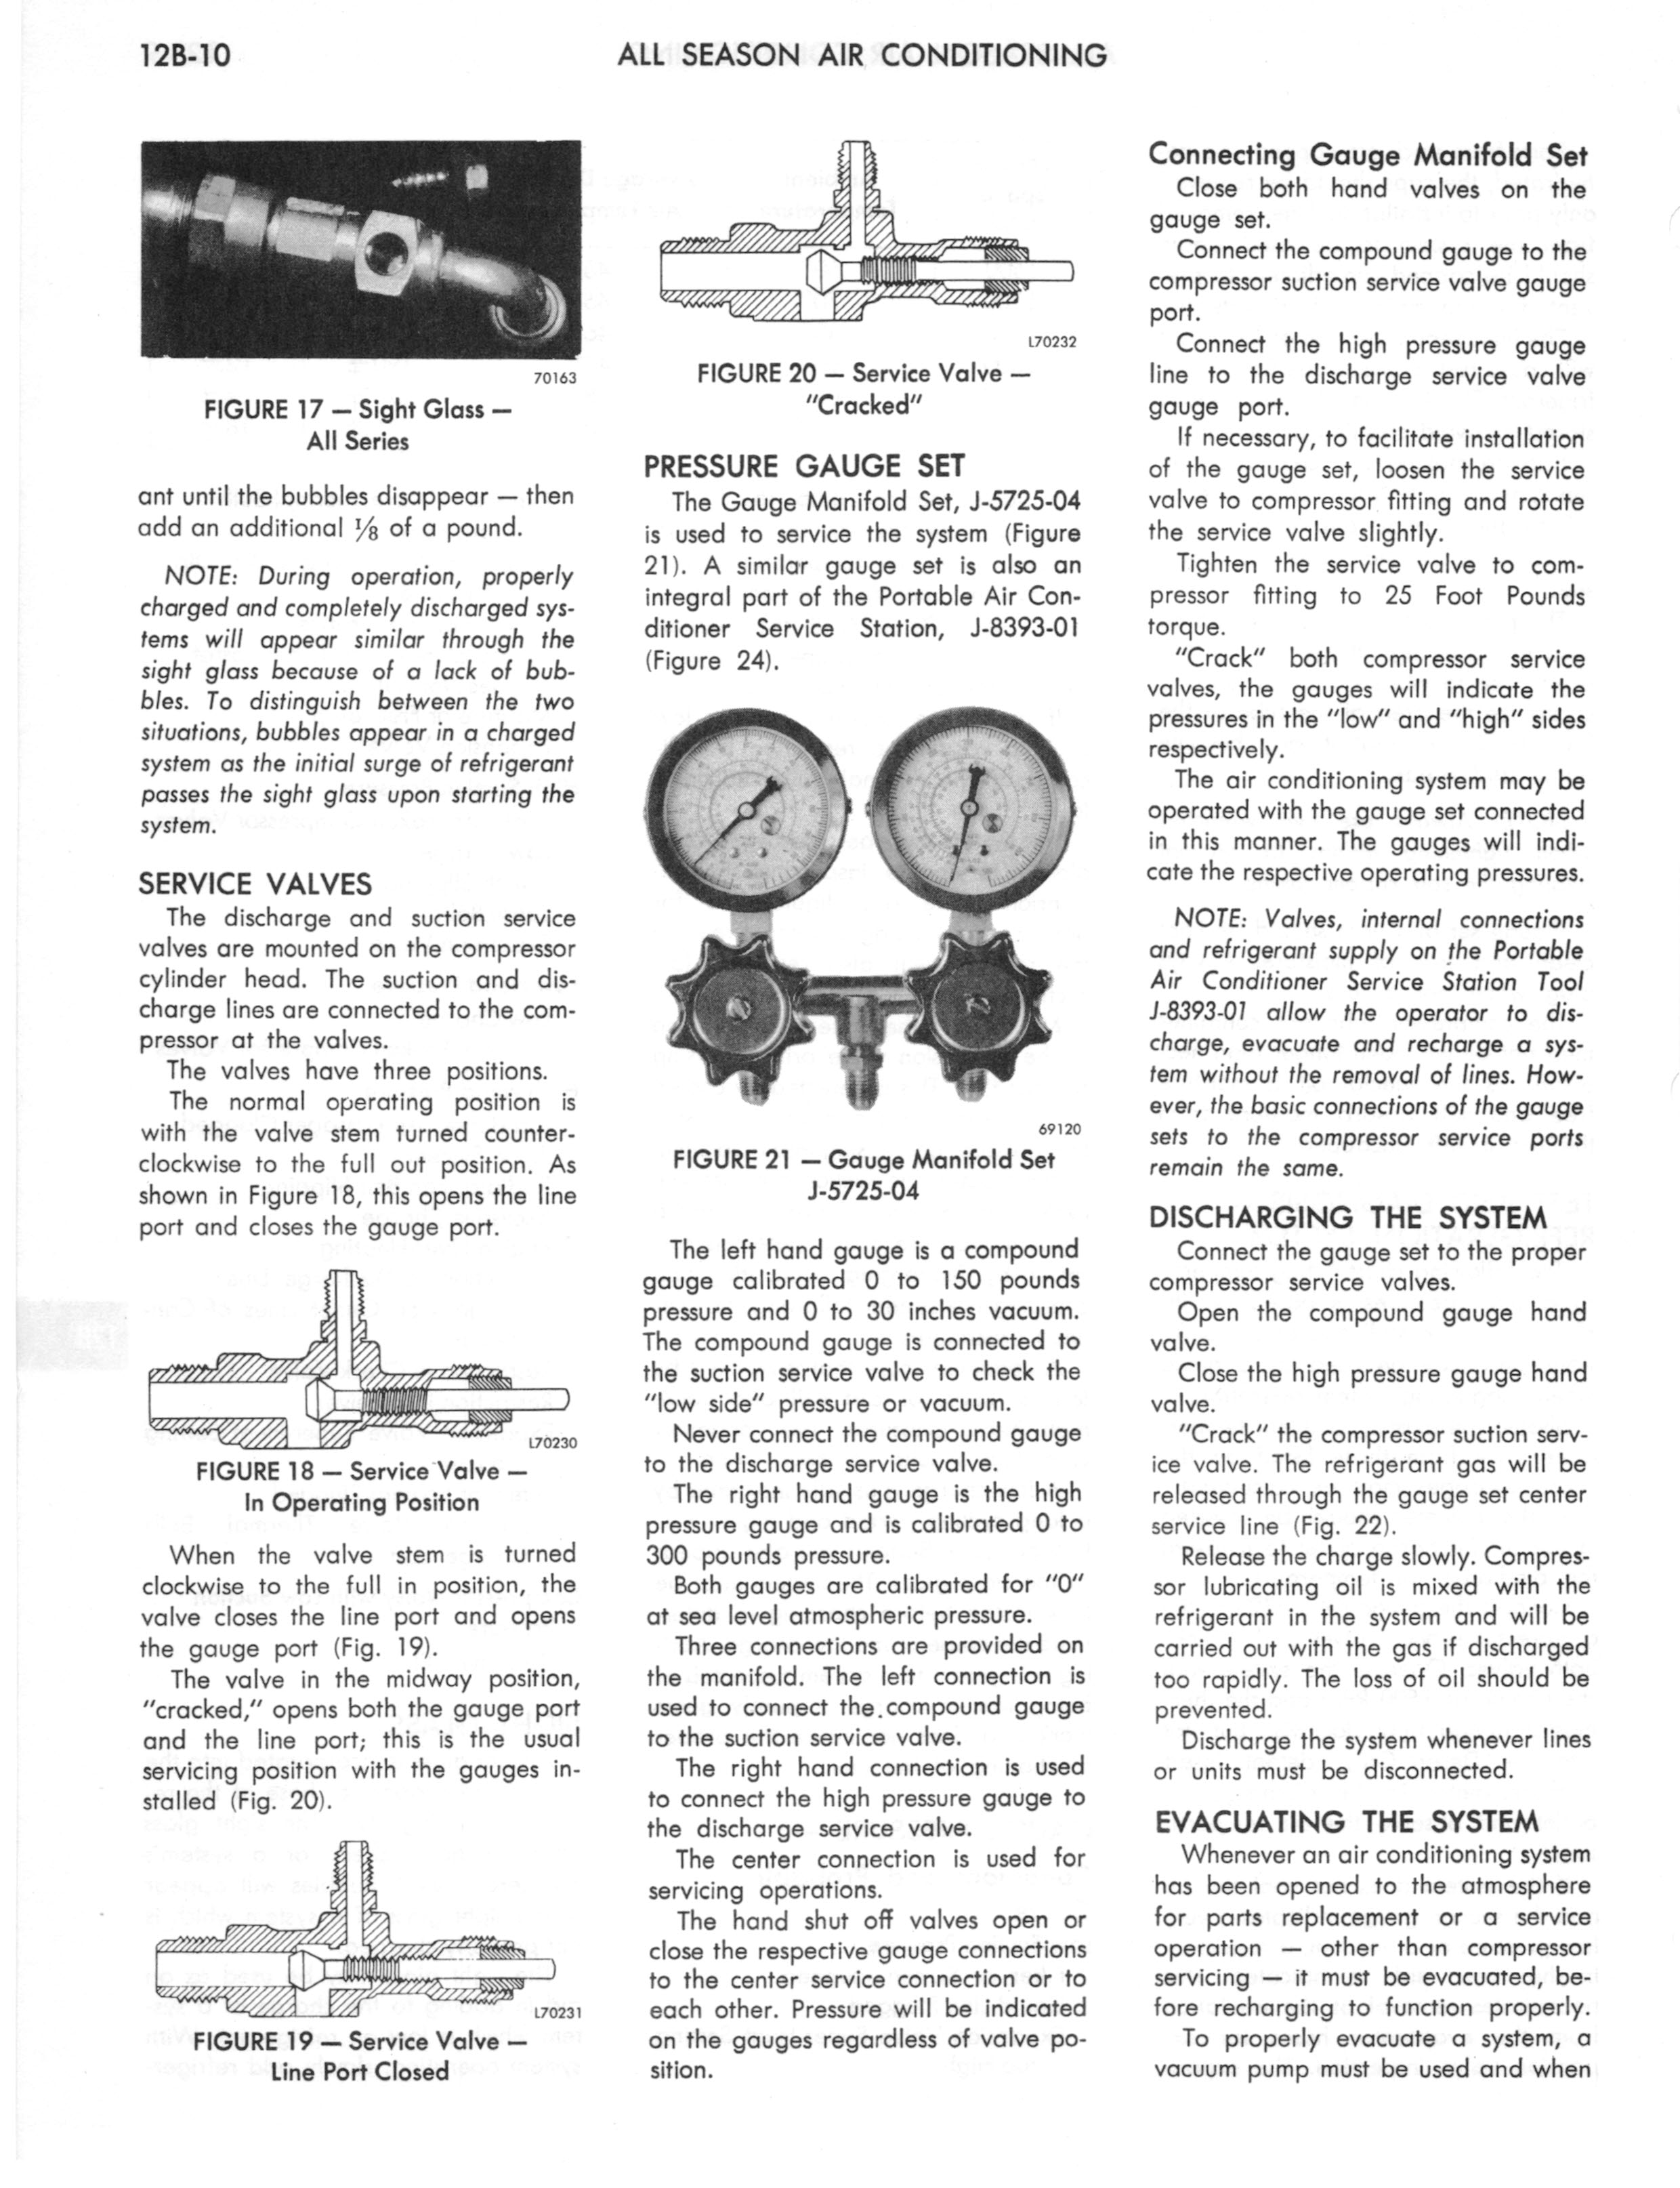 1973 AMC Technical Service Manual page 356 of 487